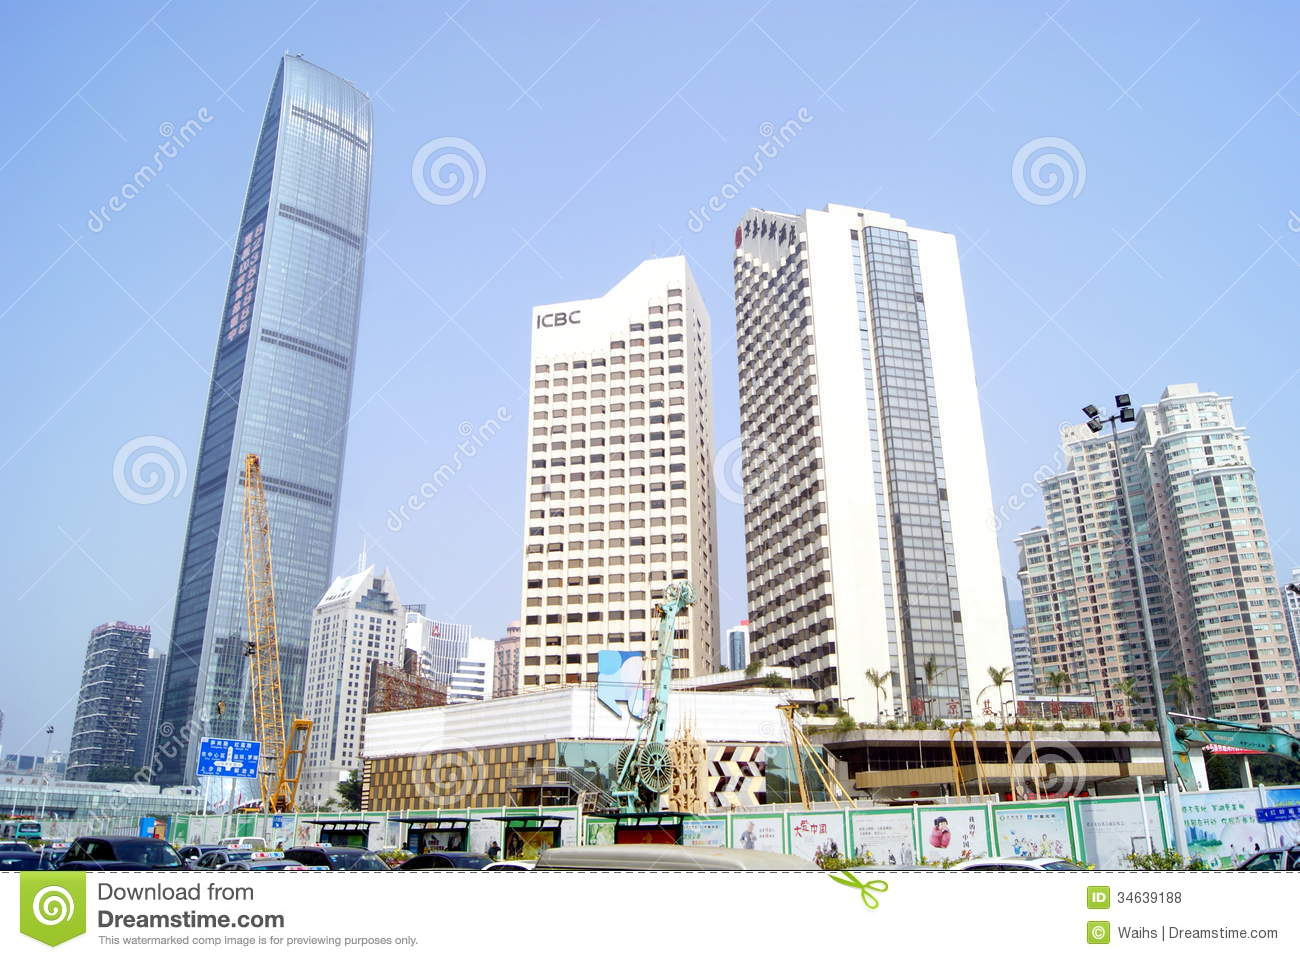 Shenzhen, China: City Building Editorial Stock Photo